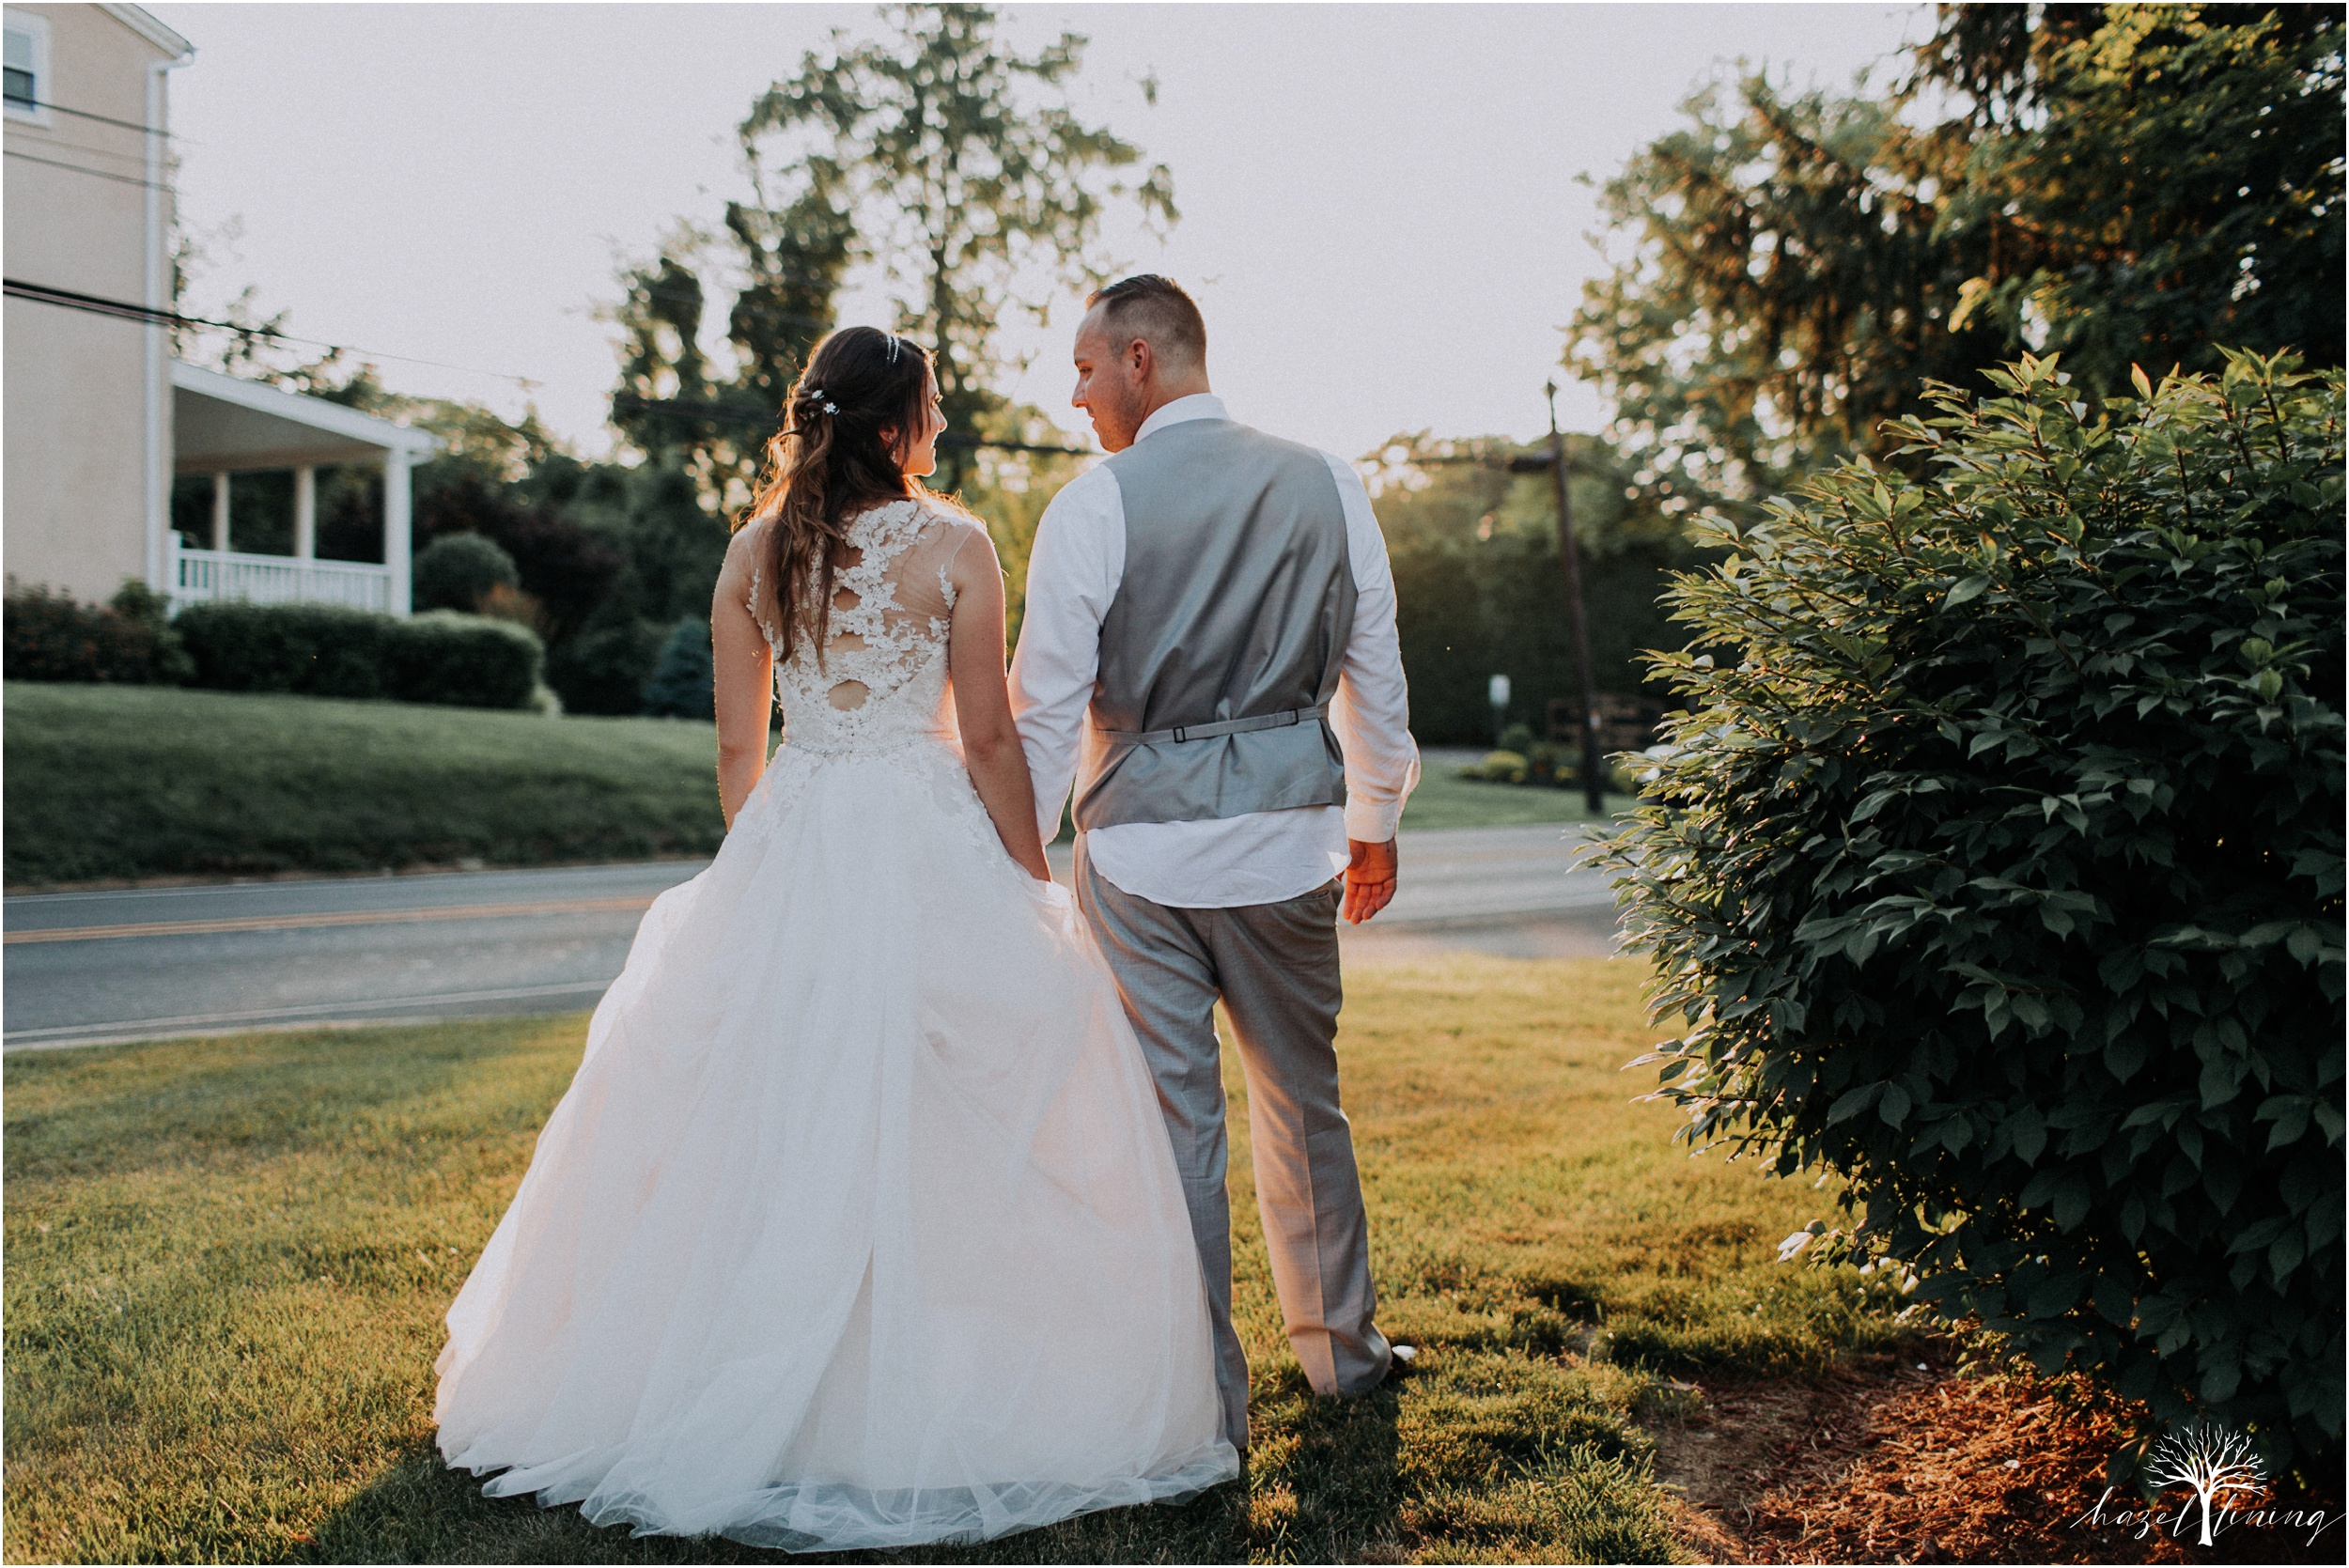 cassie-depinto-tyler-bodder-playwicki-farm-buck-hotel-featserville-trevose-pennsylvania-summer-outdoor-wedding-hazel-lining-travel-wedding-elopement-photography_0322.jpg